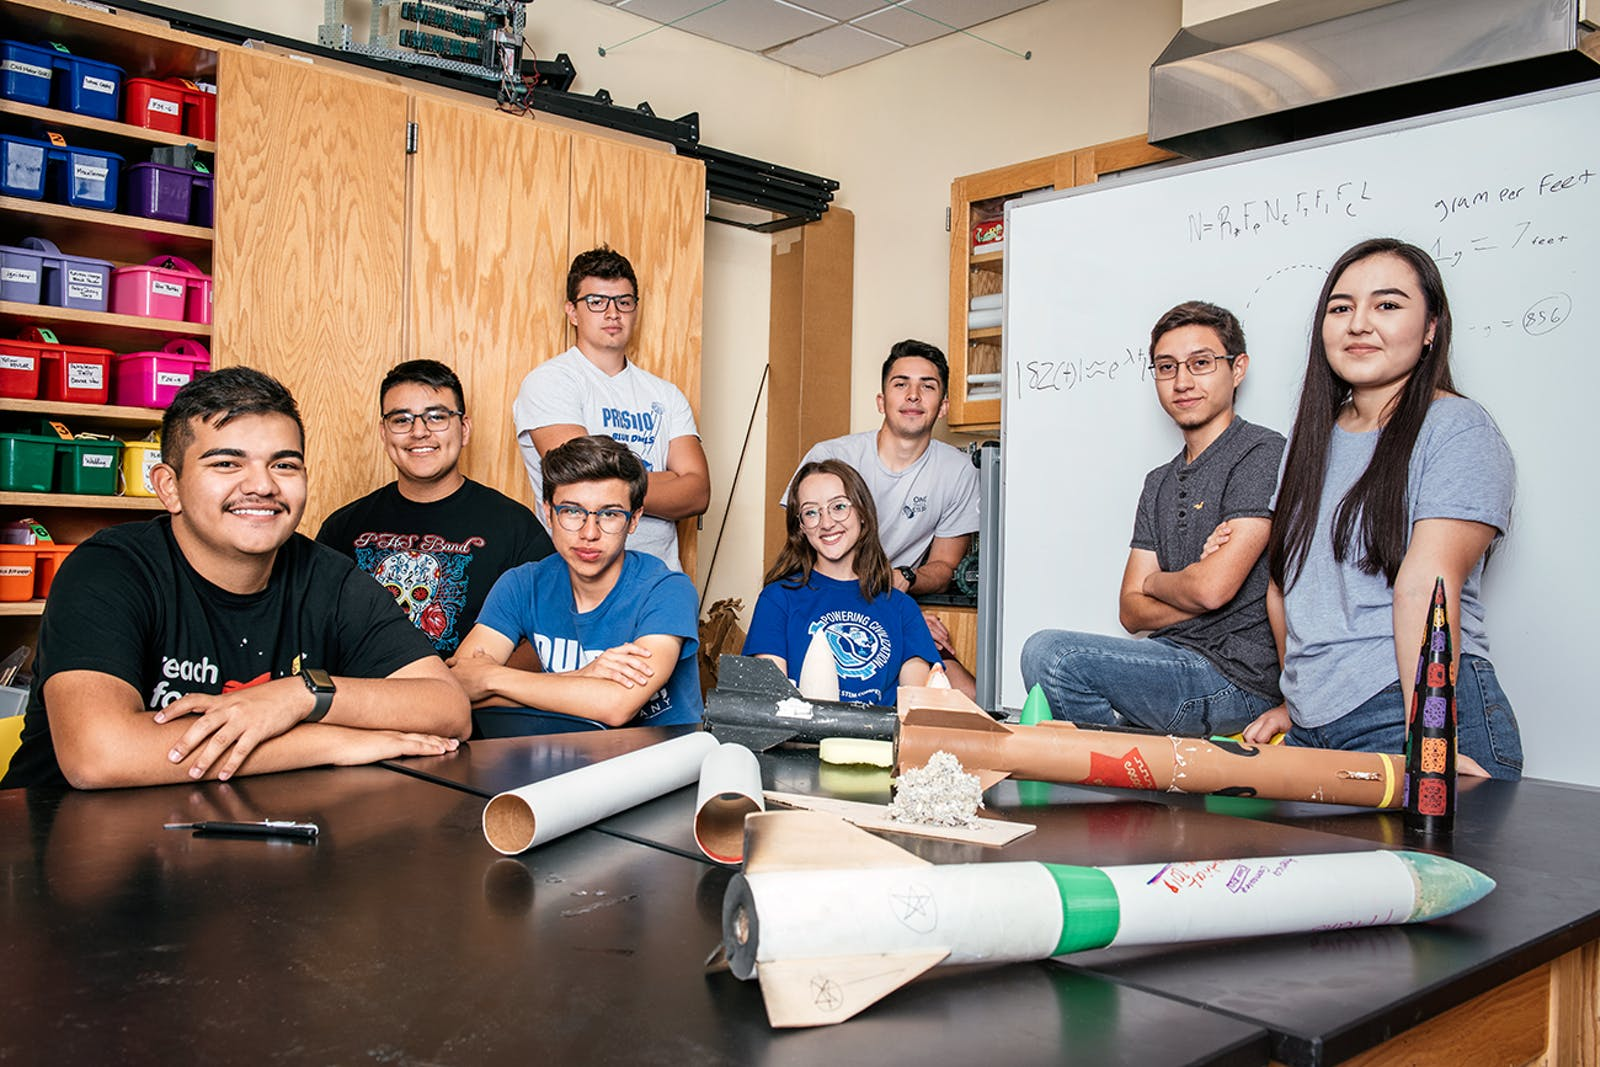 The Presidio High School rocketry team.